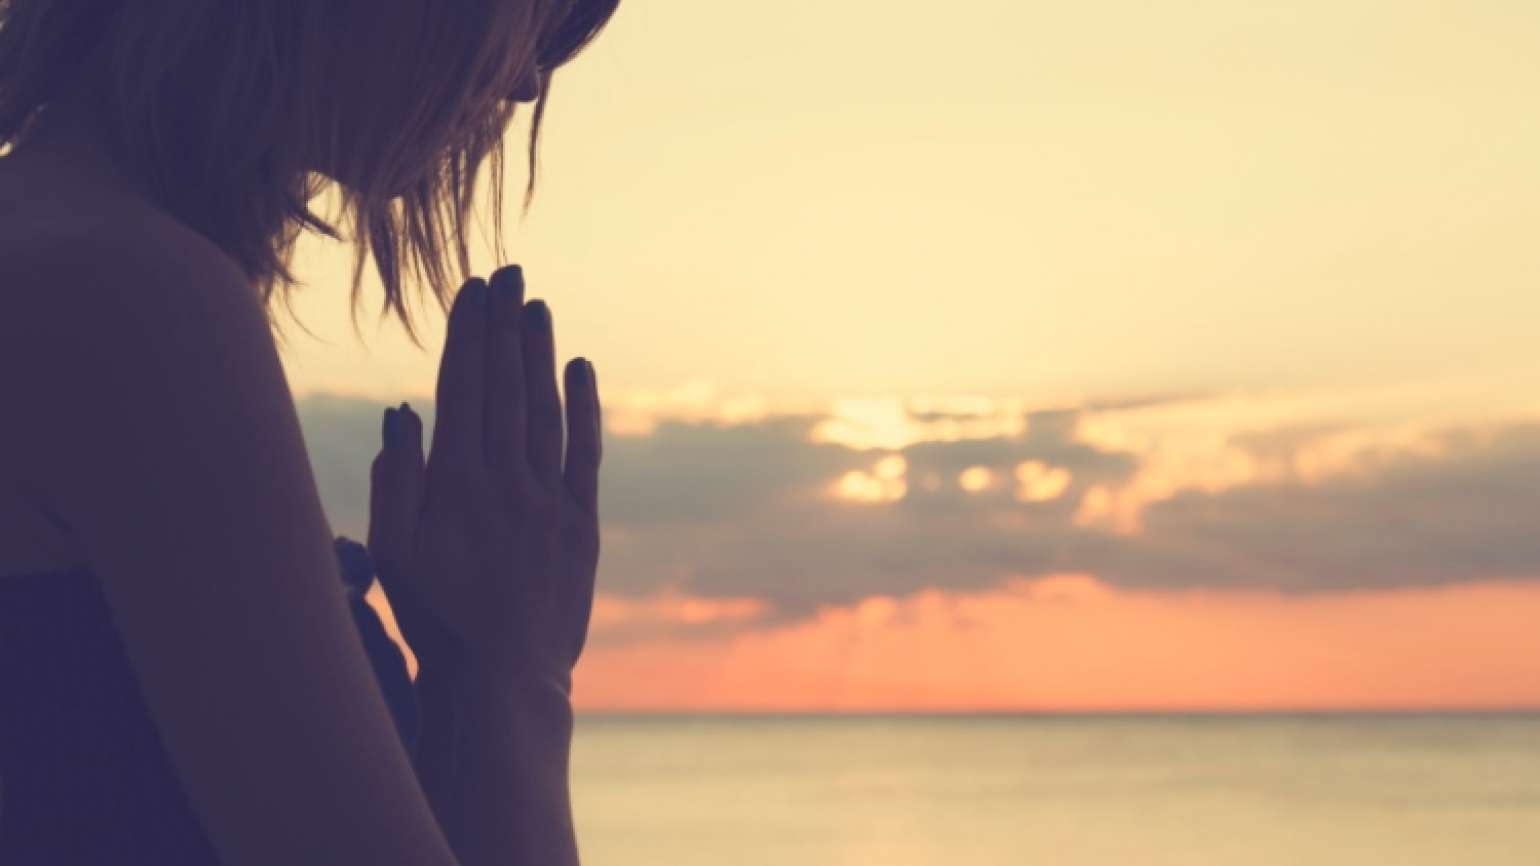 Woman praying at sunrise